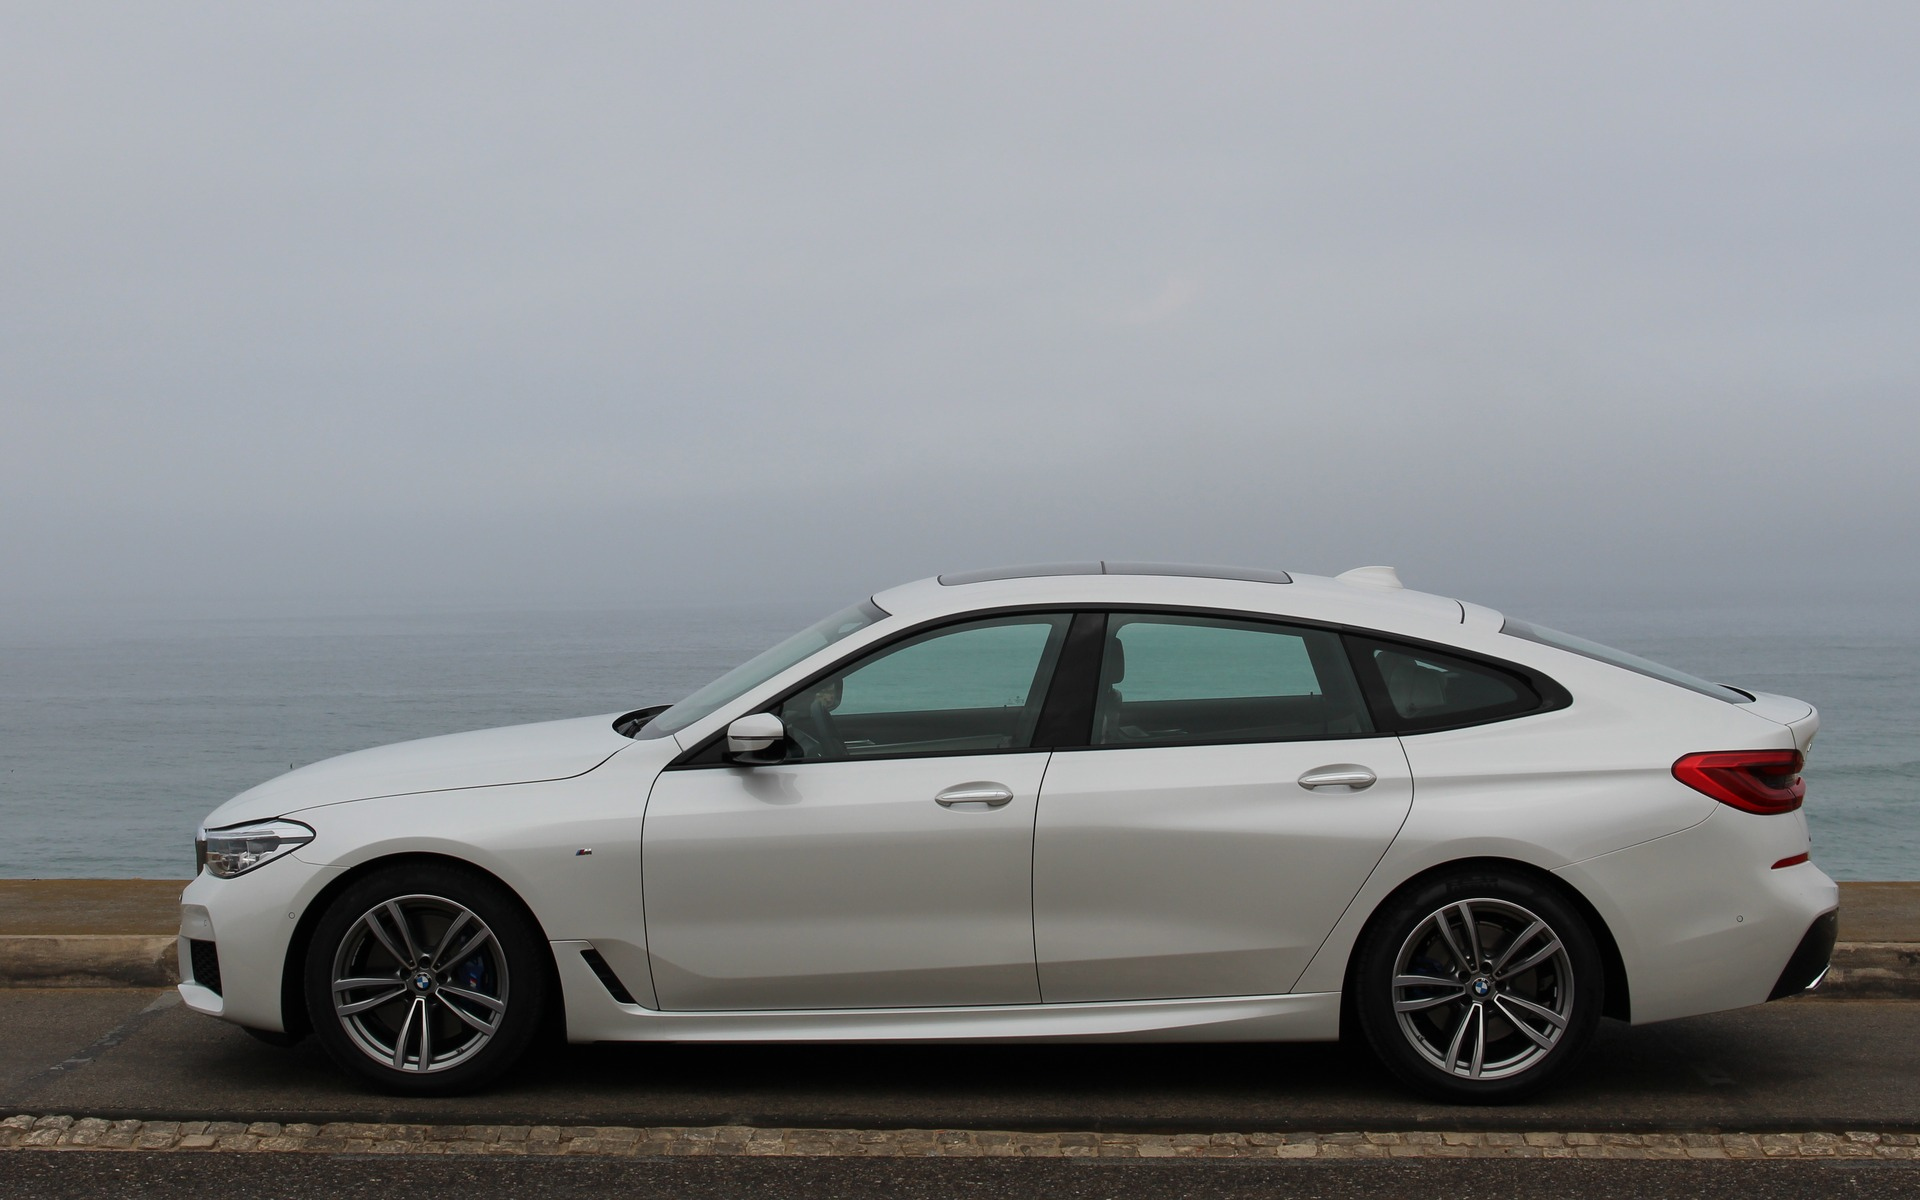 2018 BMW 640i xDrive Gran Turismo: The New Face of the 6 Series - 6/31